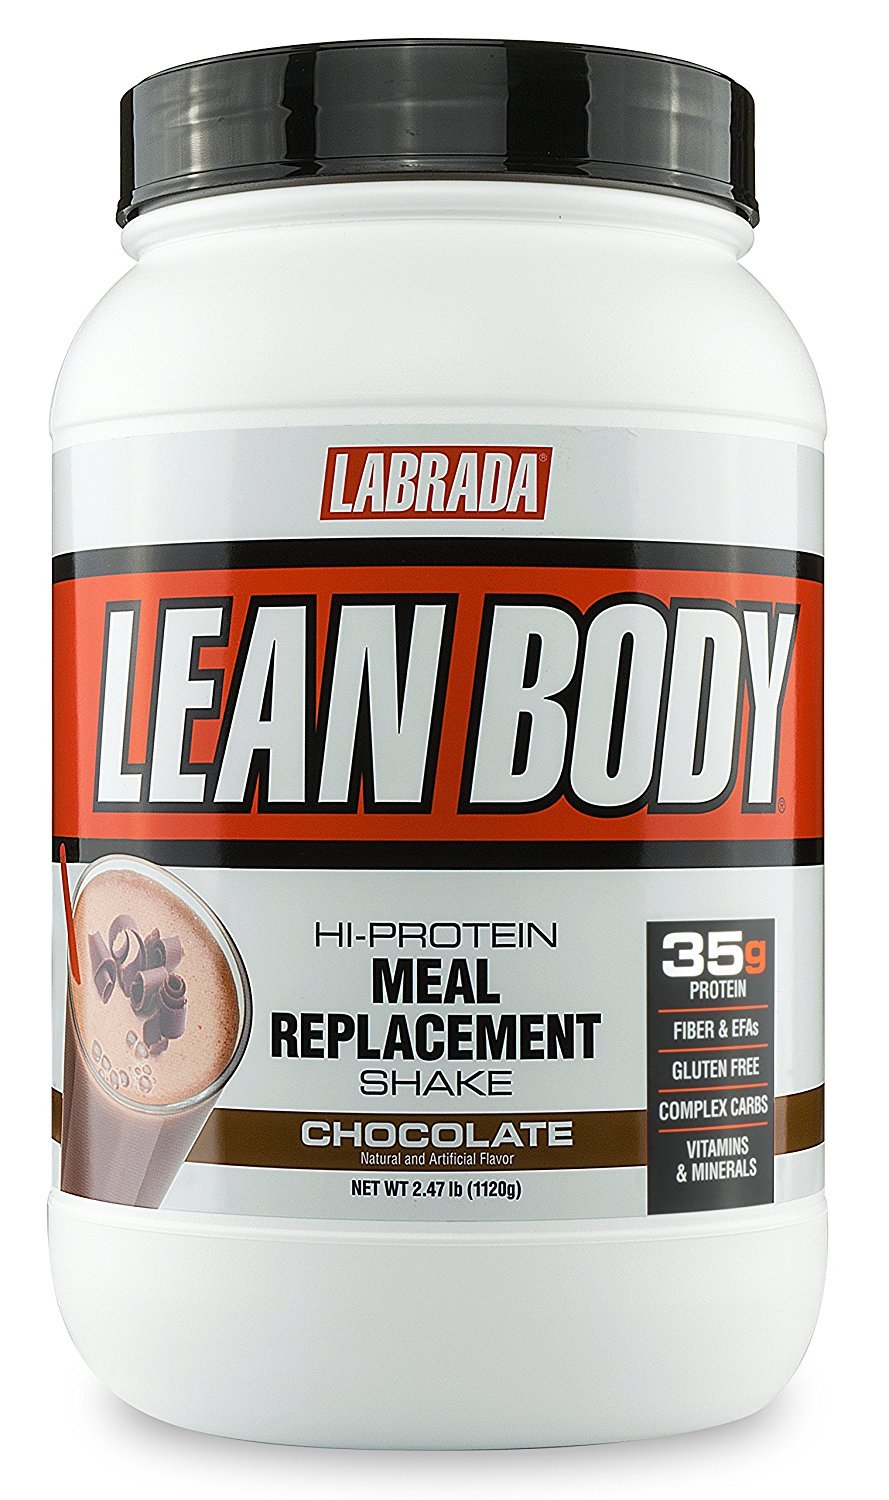 LABRADA Nutrition – Lean Body High Protein Meal Replacement Shake, Whey Protein Powder for Weight Loss and Muscle Growth, Chocolate, 2.47LB Tub